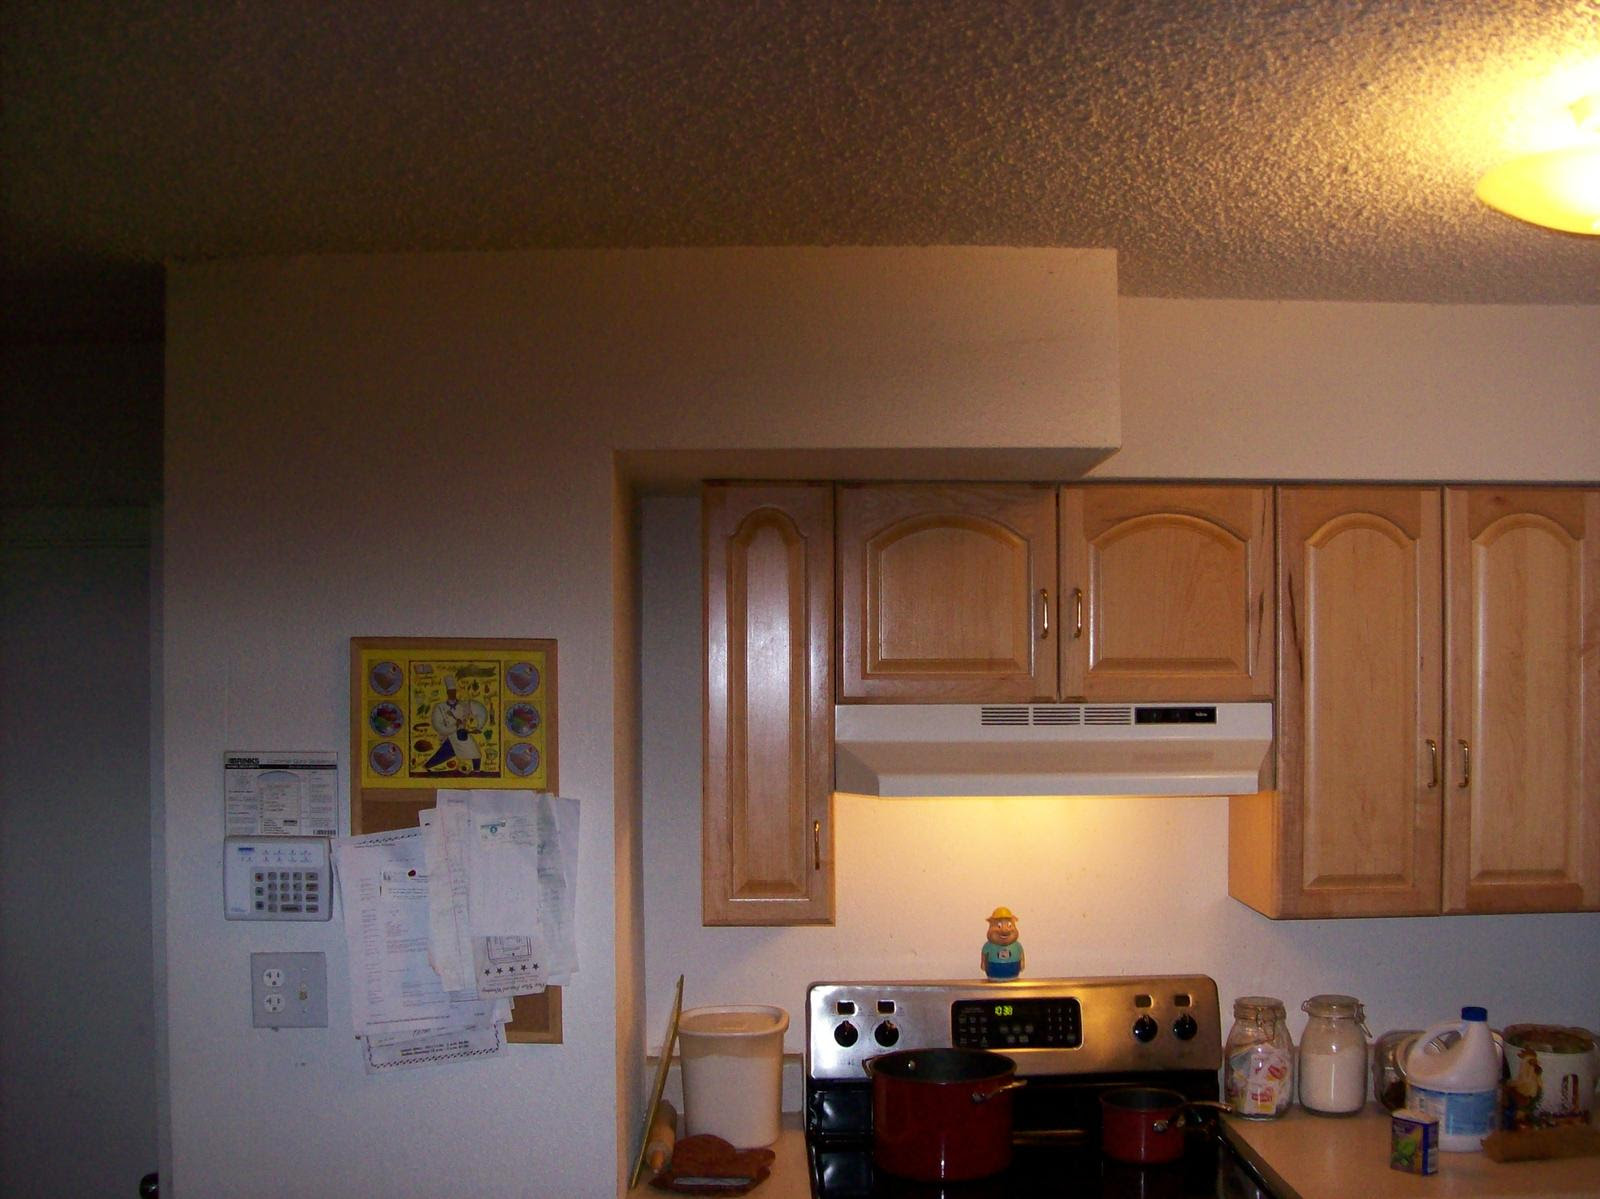 Ideas on what color to paint my kitchen and dining room ...